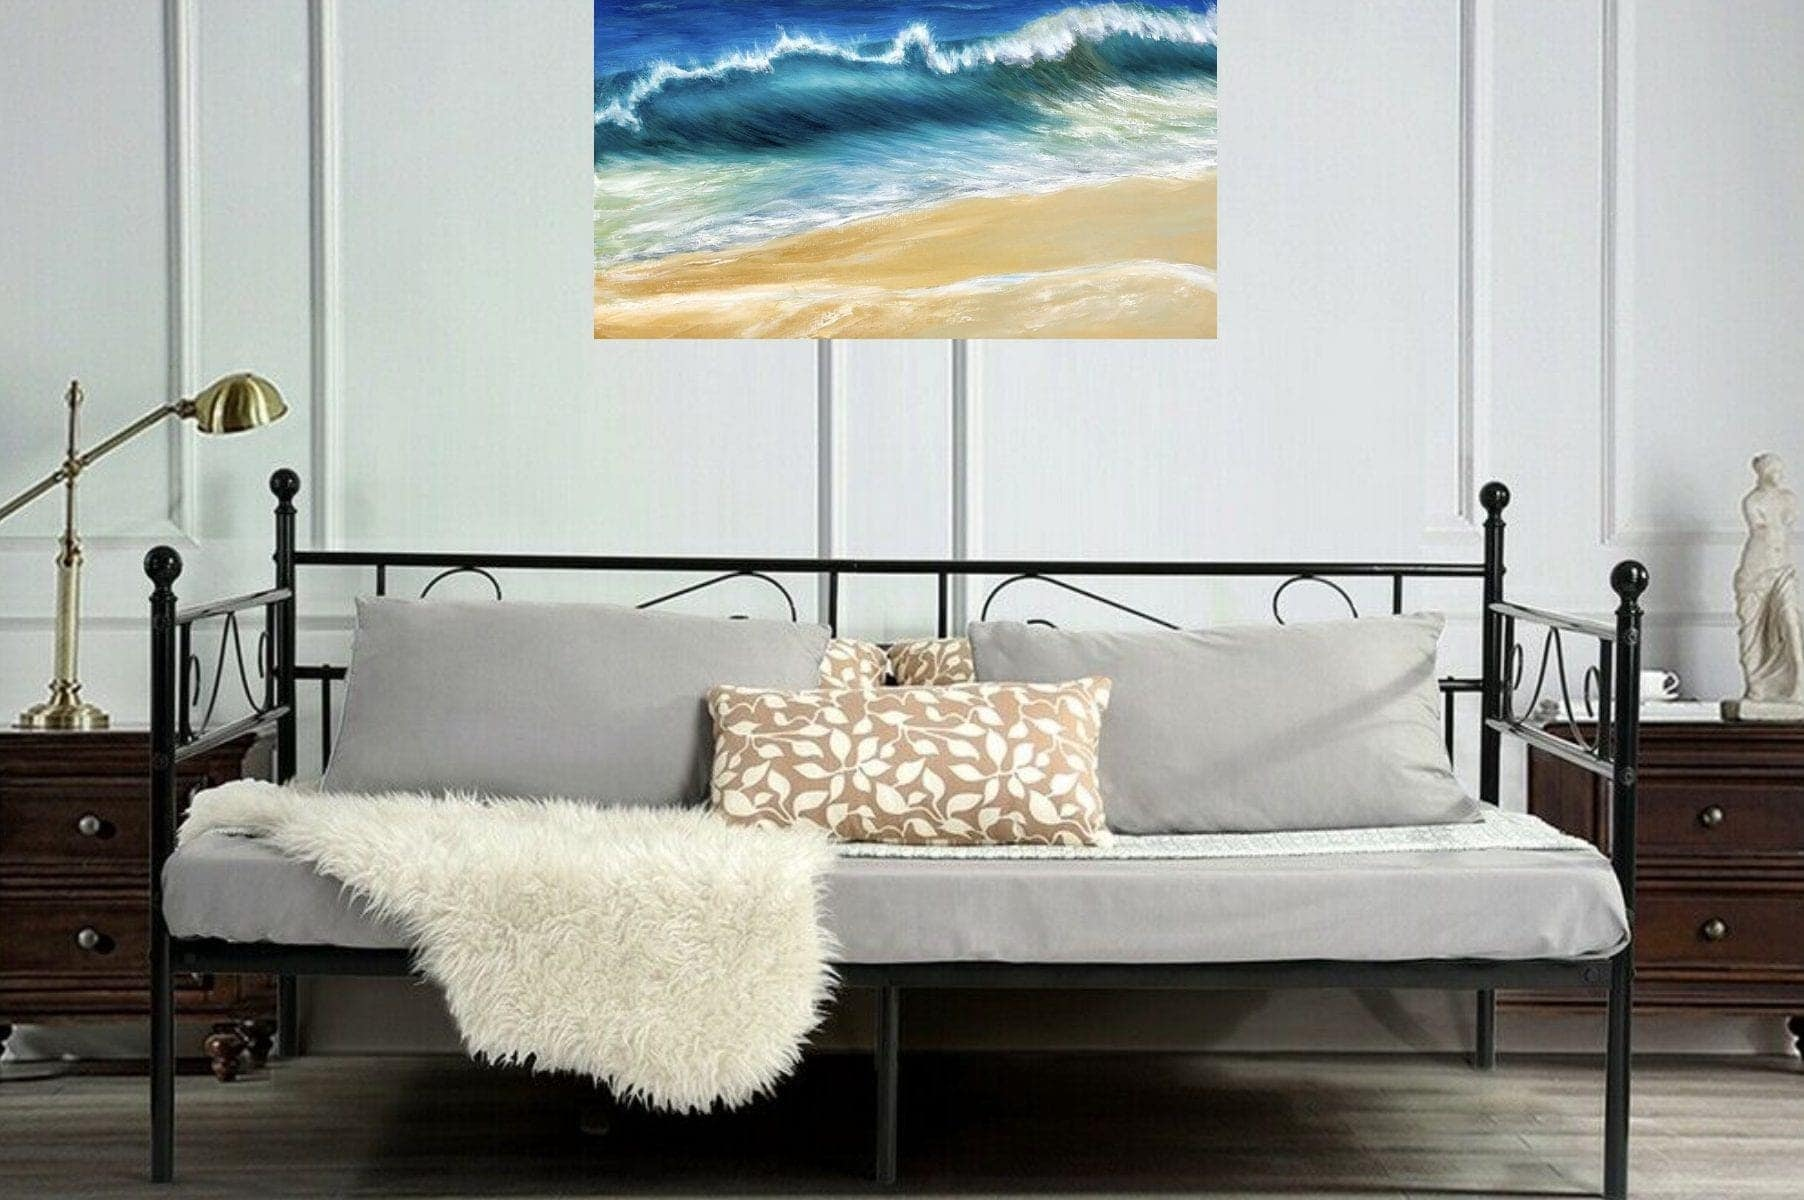 Ocean Wave giclee print in a room setting